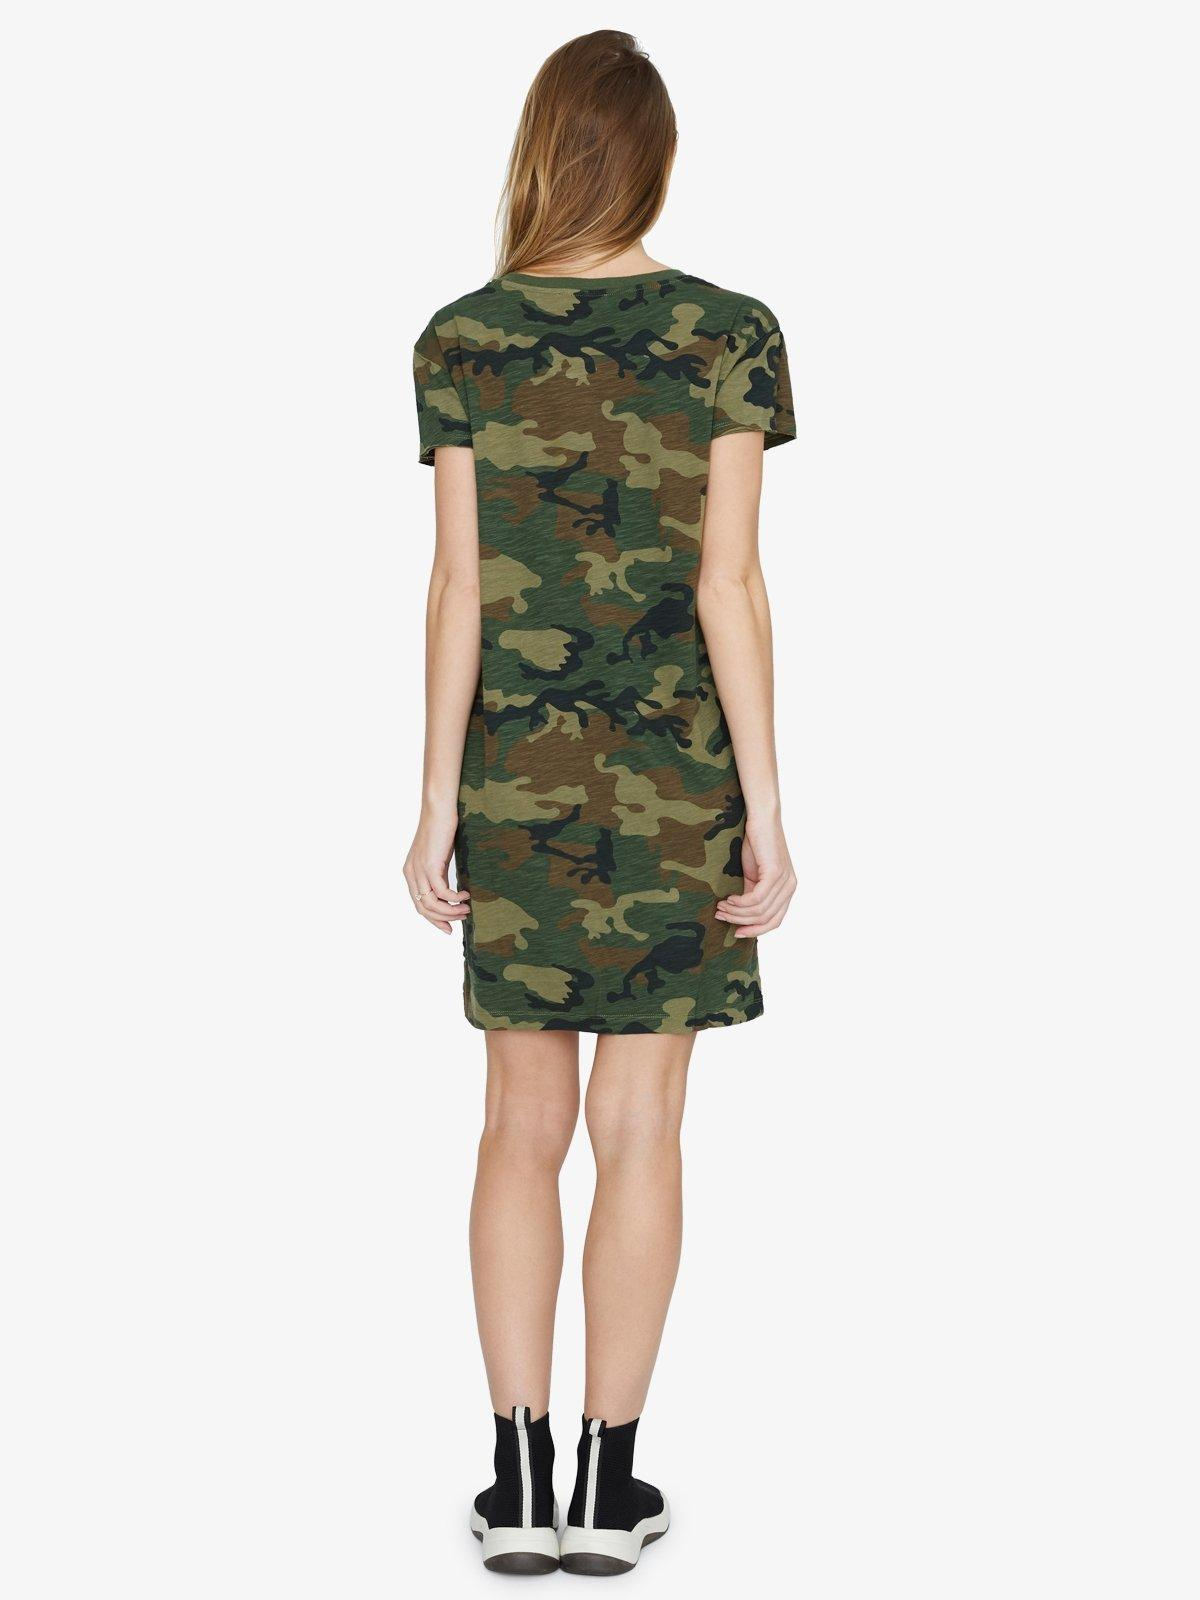 915f207a207f Lyst - Sanctuary Clothing One Pocket T-shirt Dress in Green